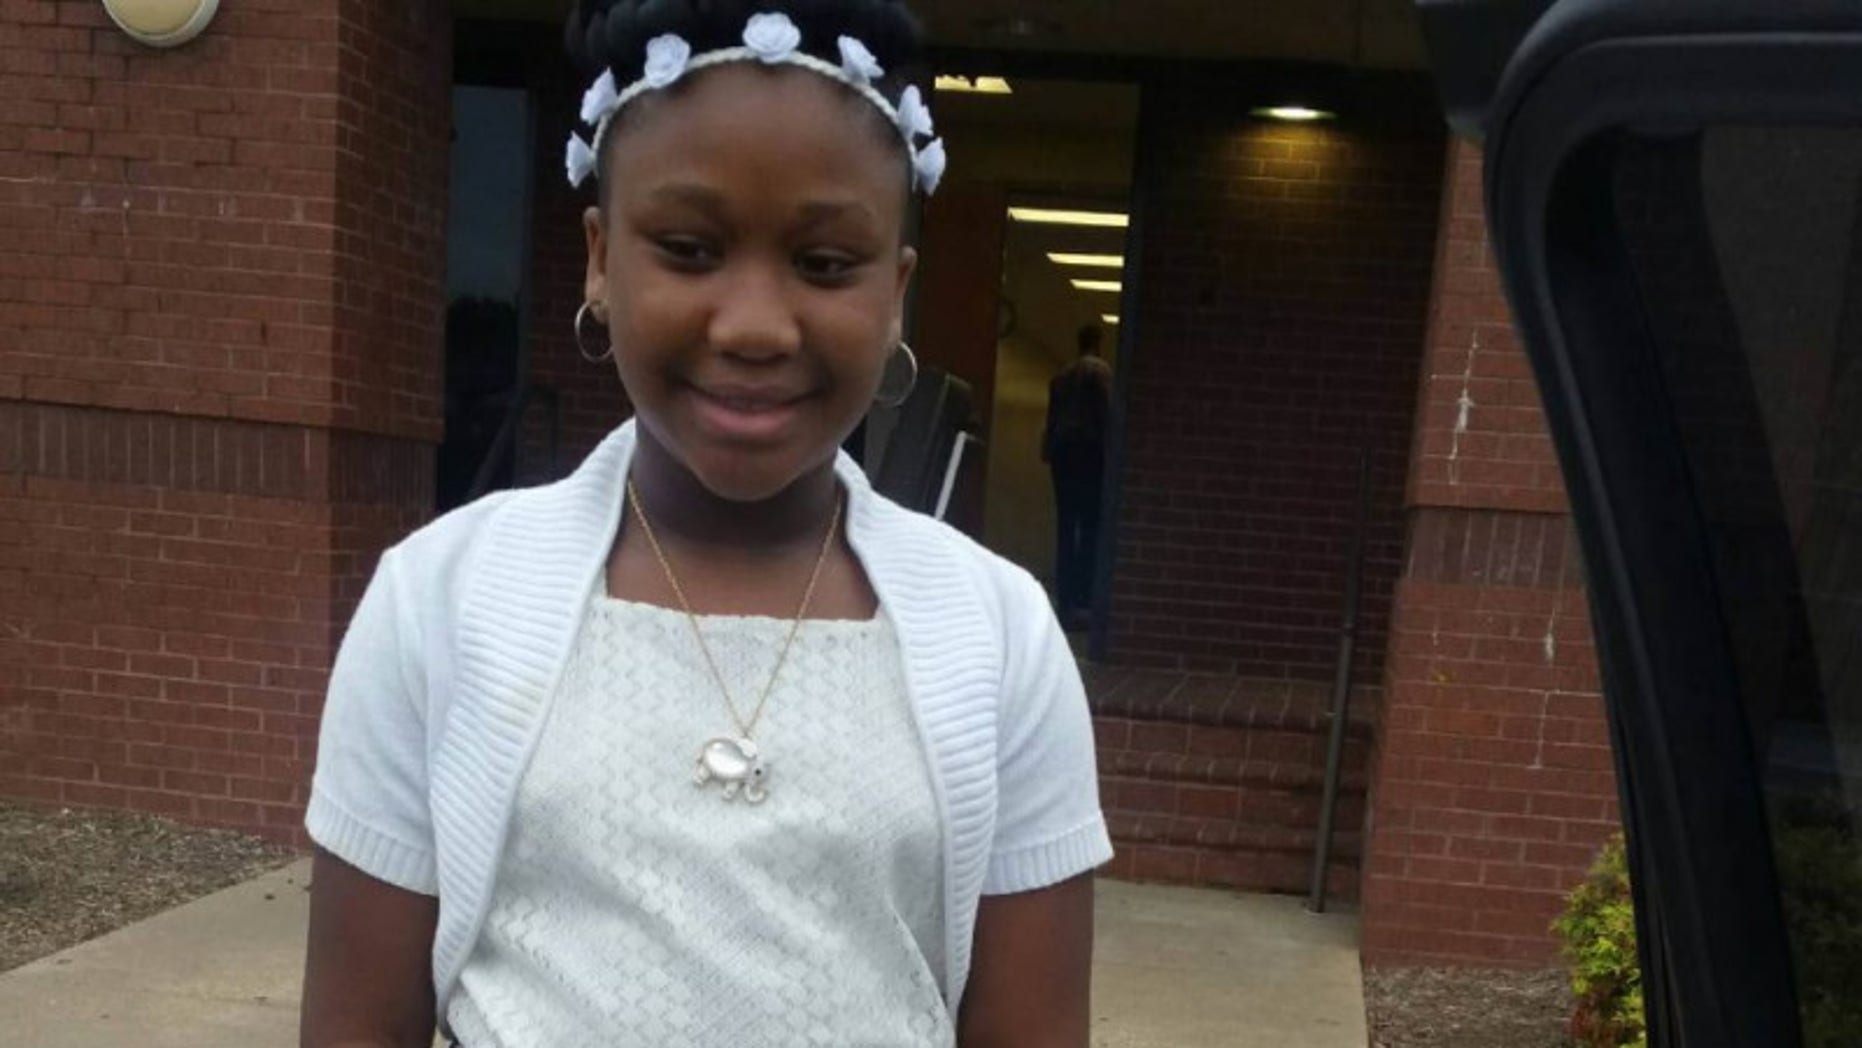 N'Khemya King complained of a stomach ache and was treated for strep throat before doctors diagnosed her with leukemia.